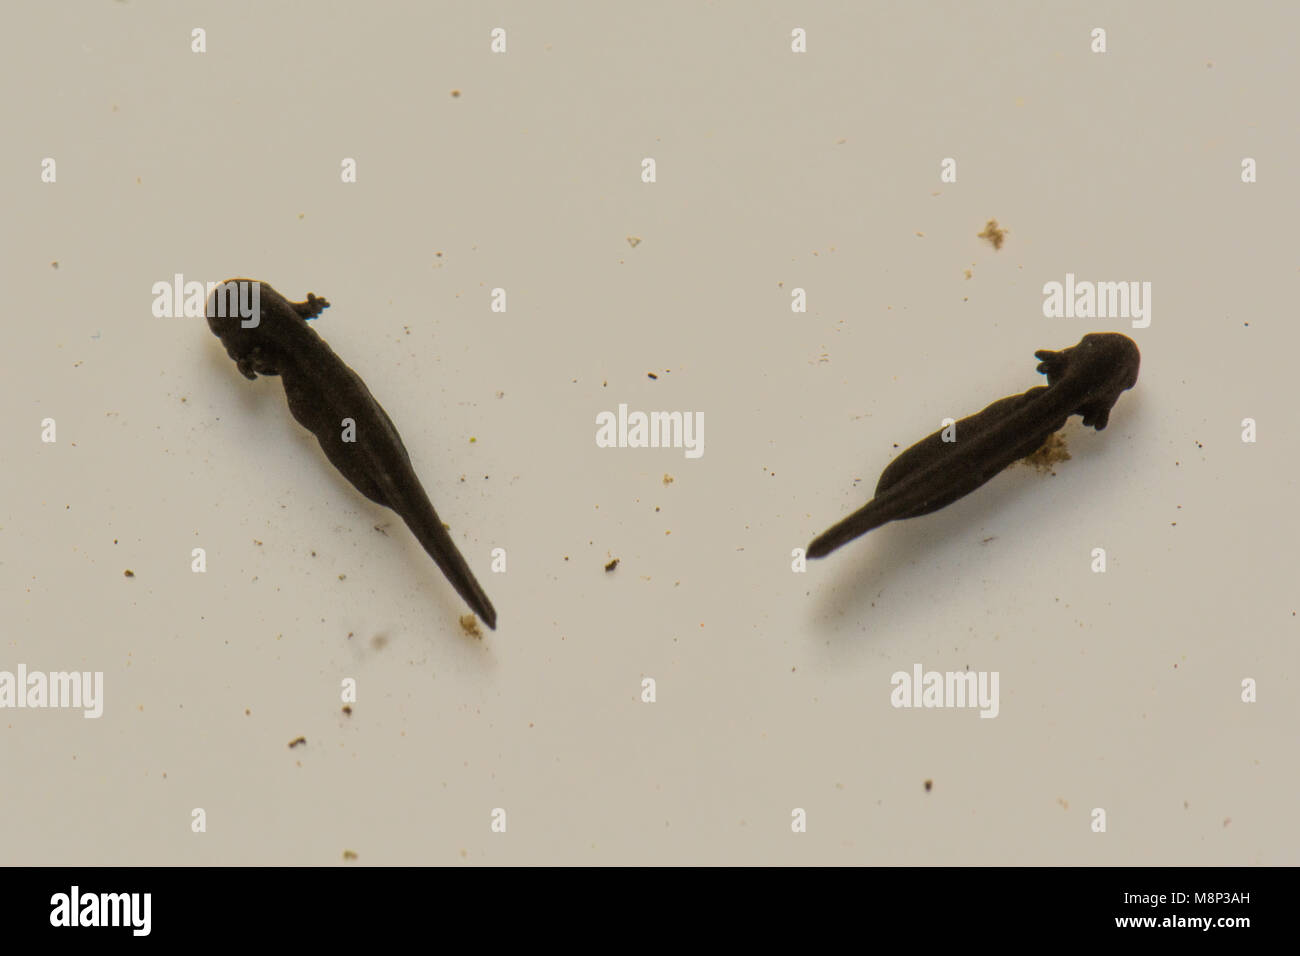 Newly hatched common frog tadpoles (Rana temporaria) - Stock Image